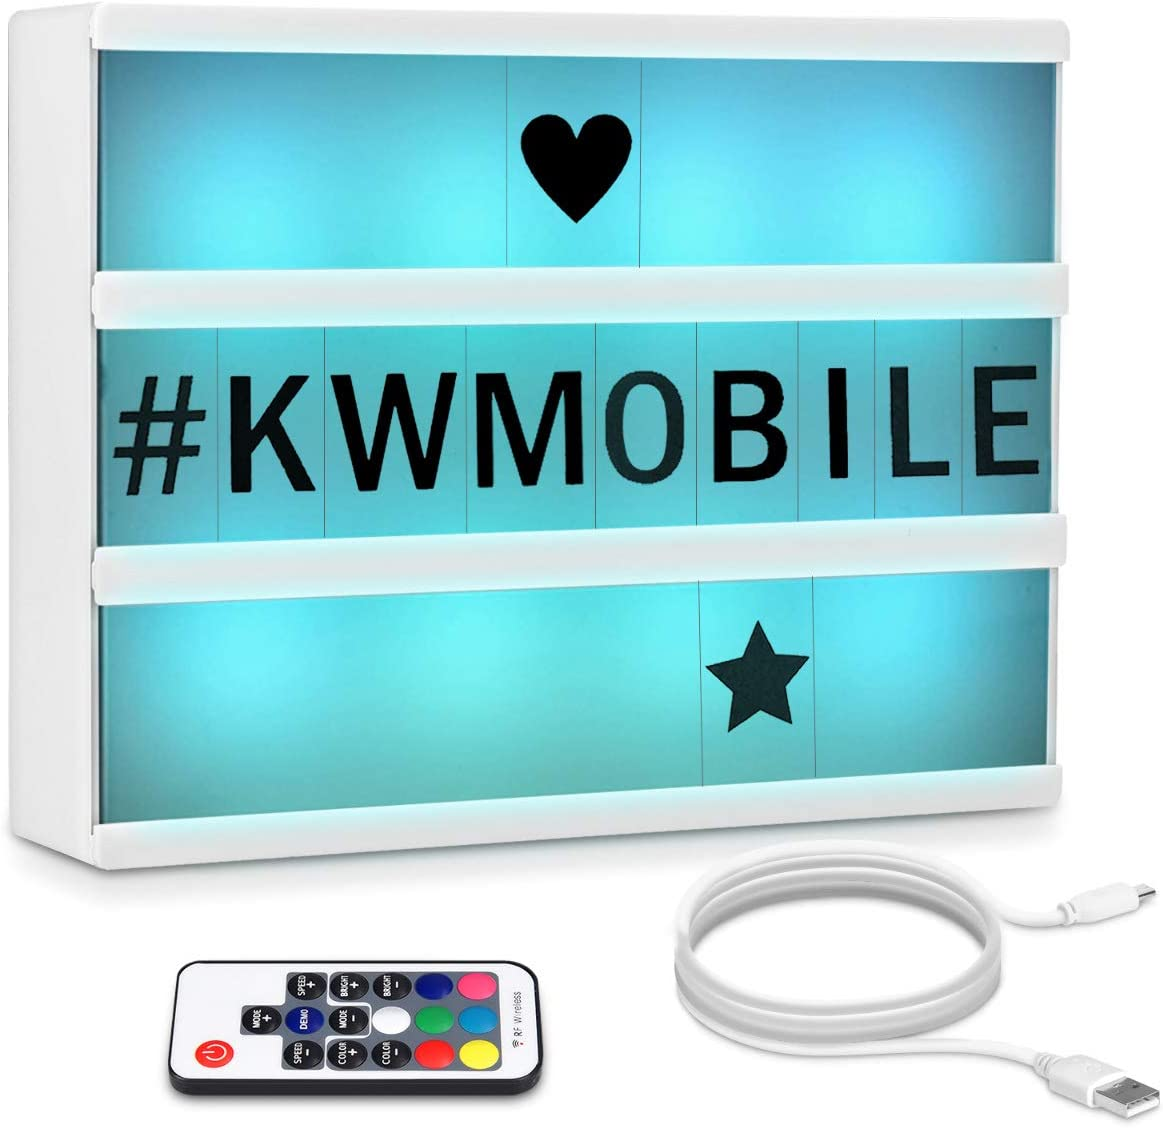 kwmobile Caja de luz cinematográfica LED A4 - Light Box con cambio de color y mando a distancia - Caja luminosa con 126 letras negras y cable USB